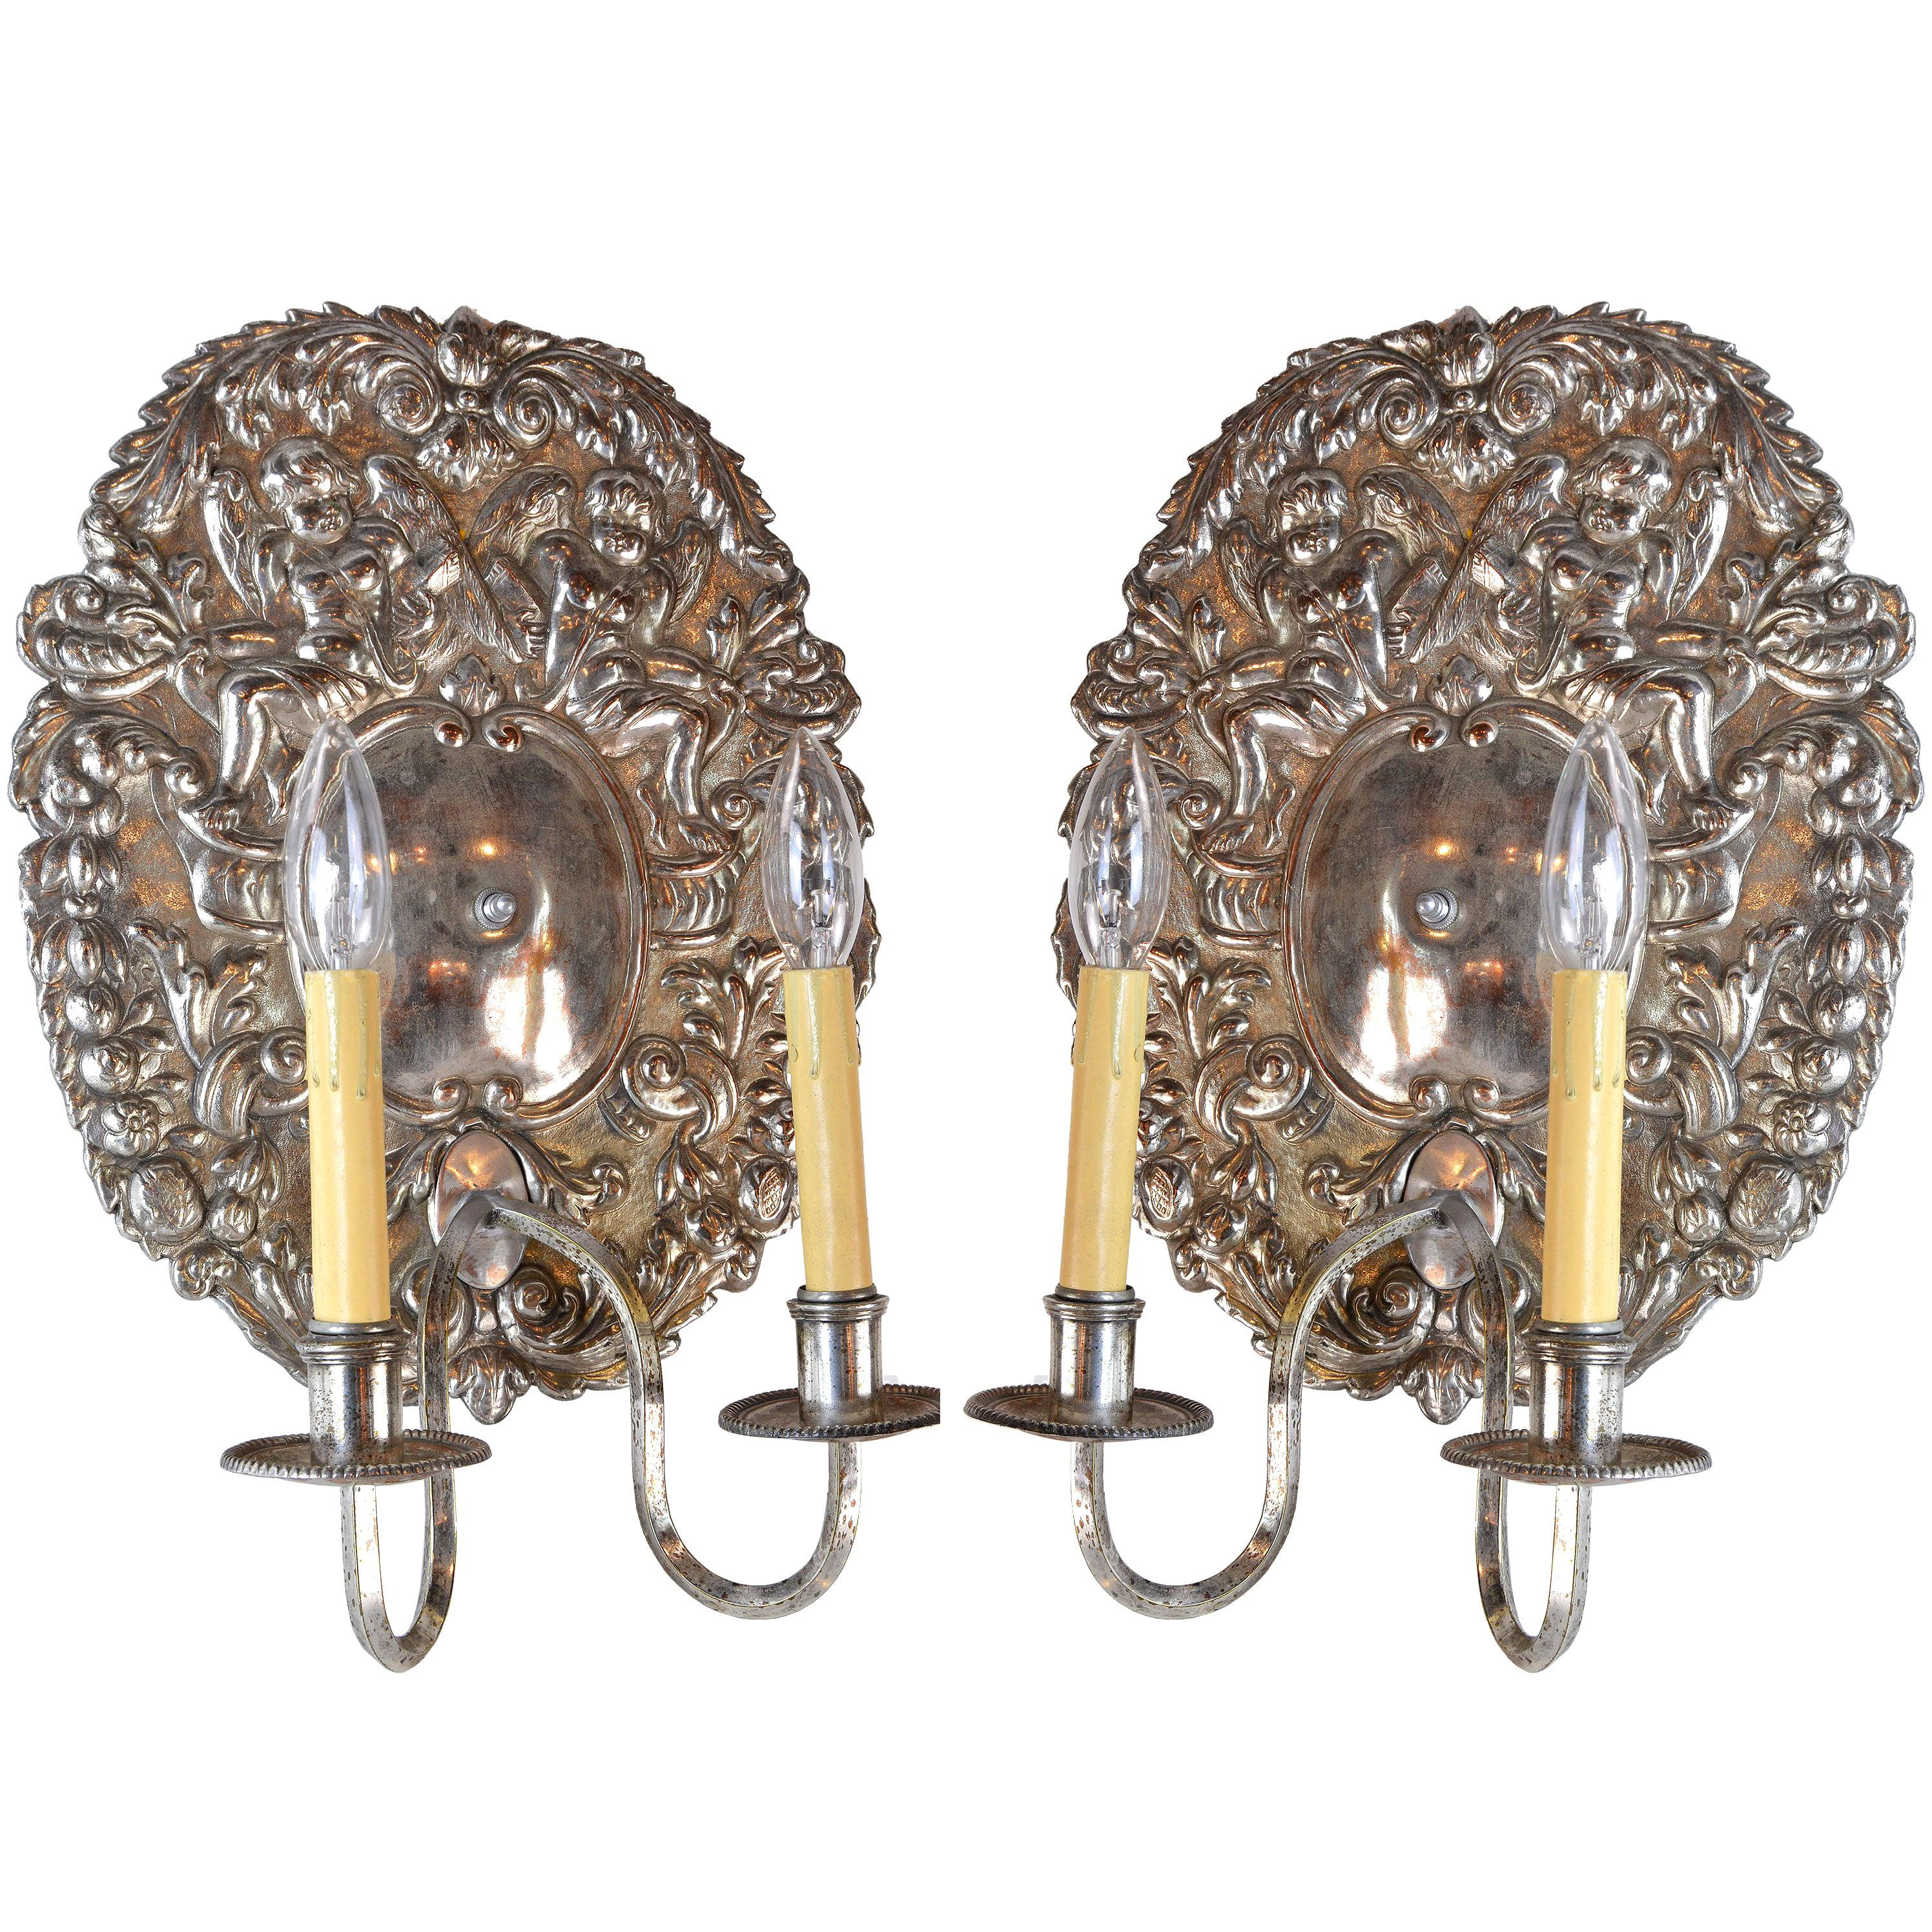 Early American Silver Sconce Pair with Cherubs